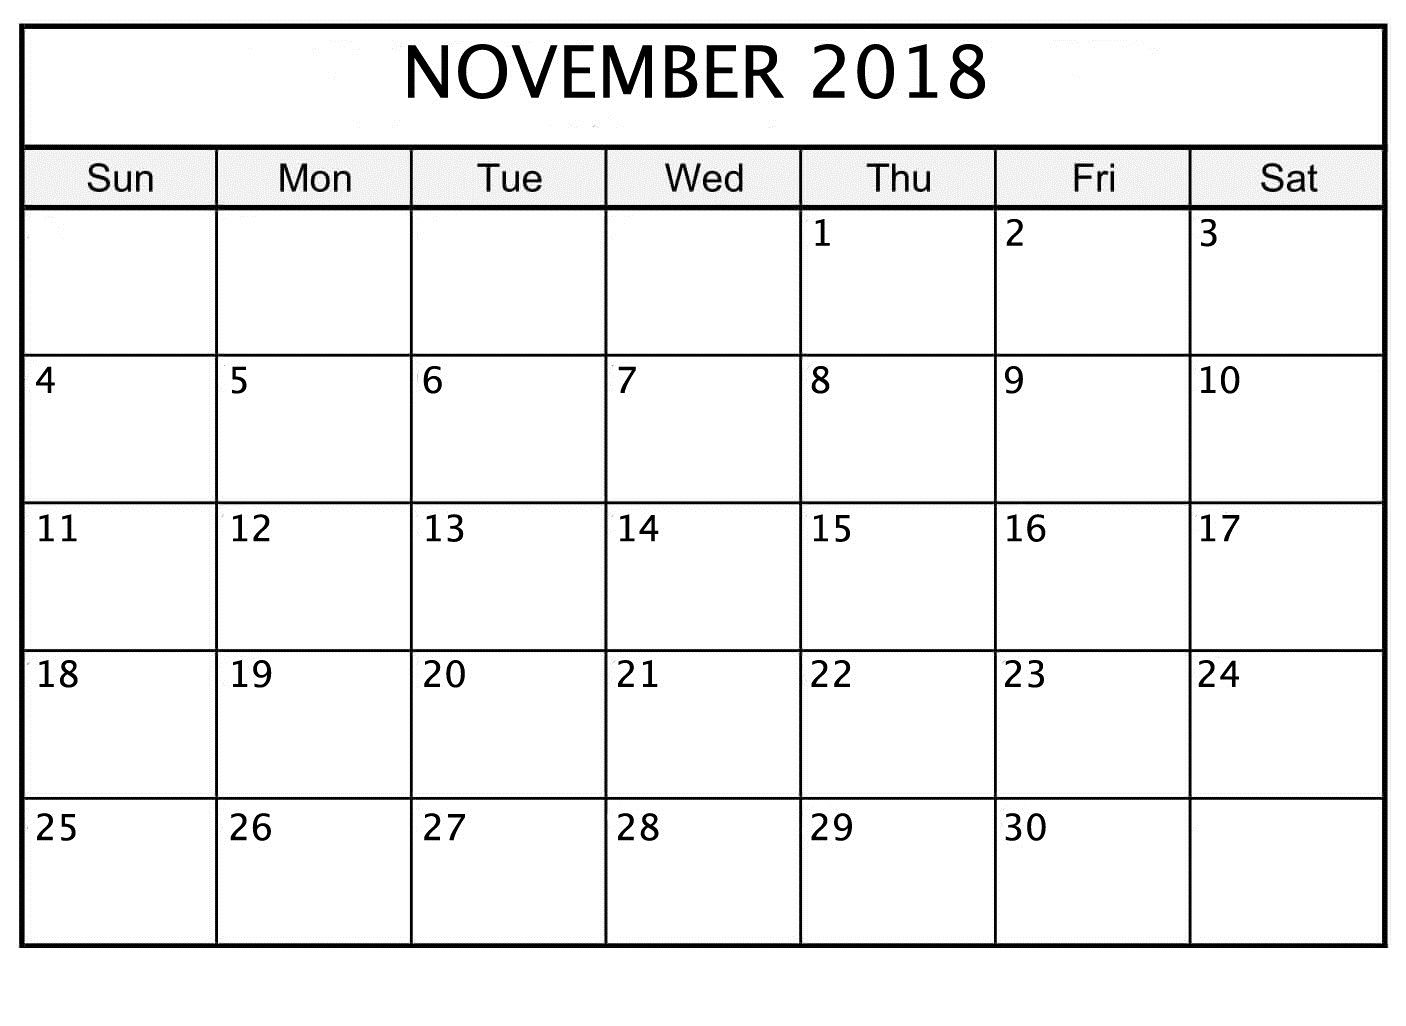 November 2018 Printable Calendar Date And Time | October